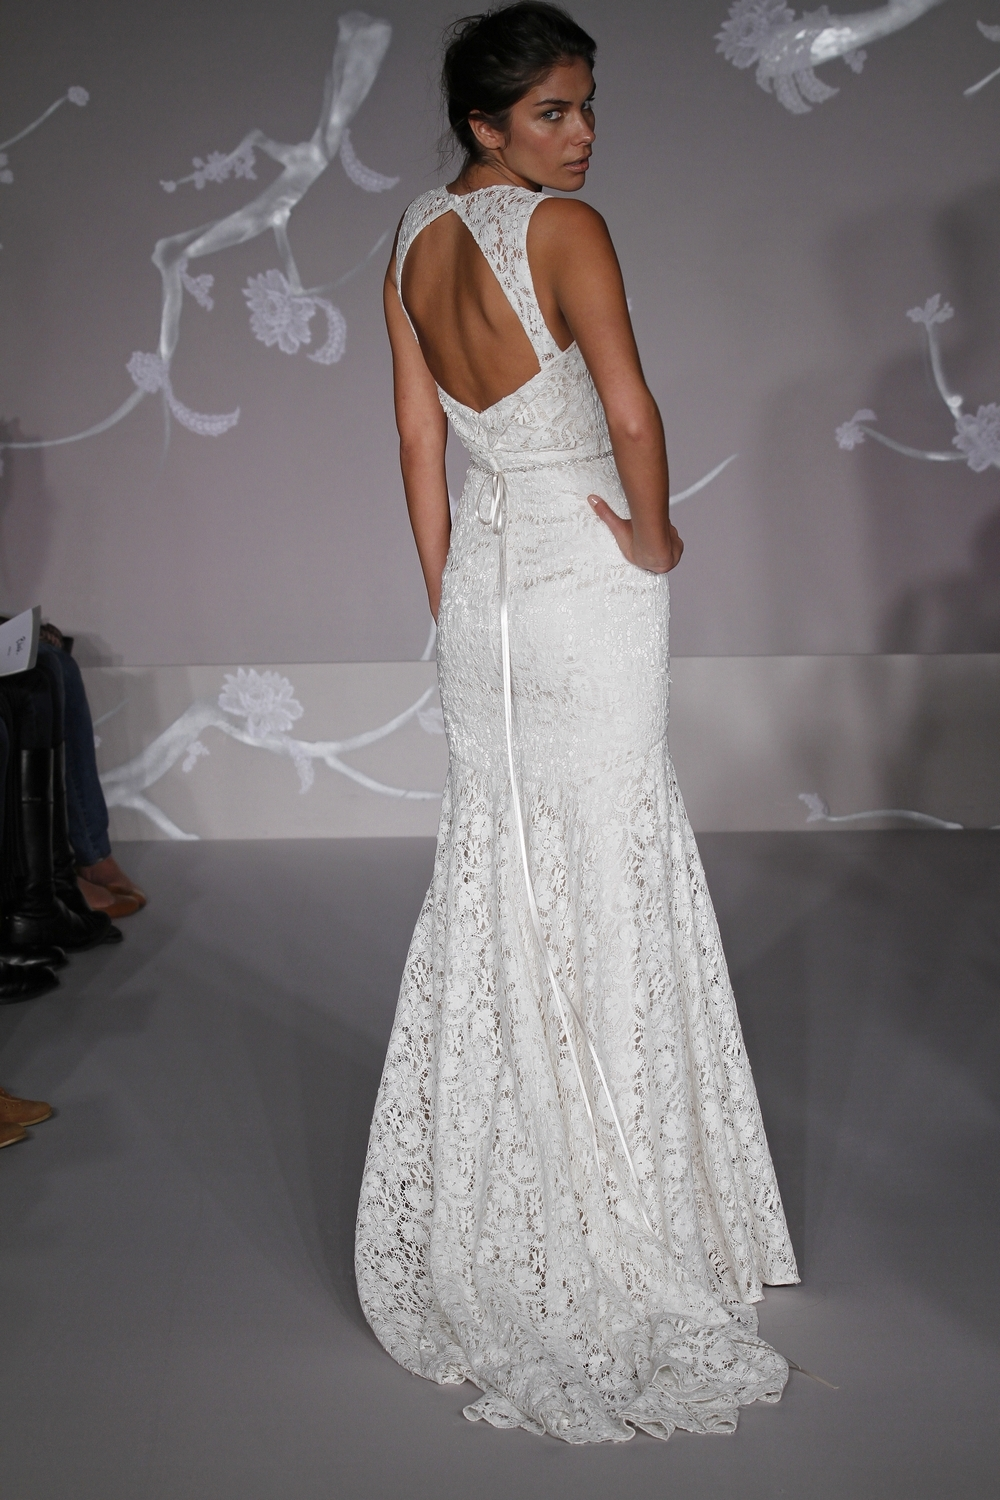 White Lace Mermaid Style Wedding Dress With Open Back From Blush By JLMs Spring 2011 Collection